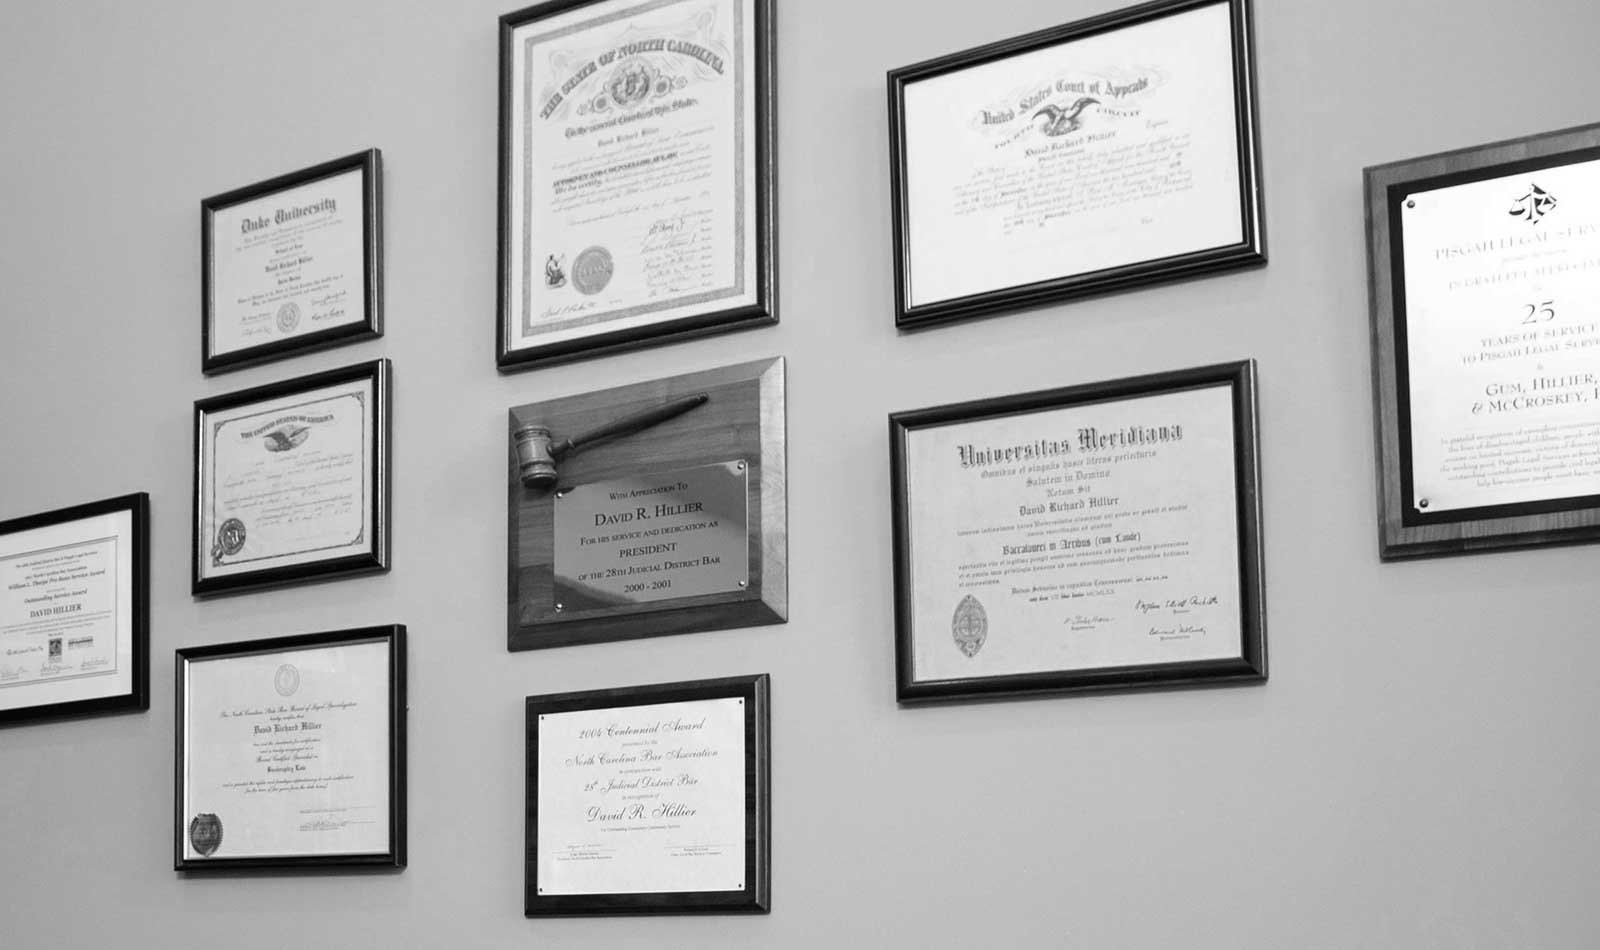 Black and white photo for of David R. Hillier's credentials and awards.